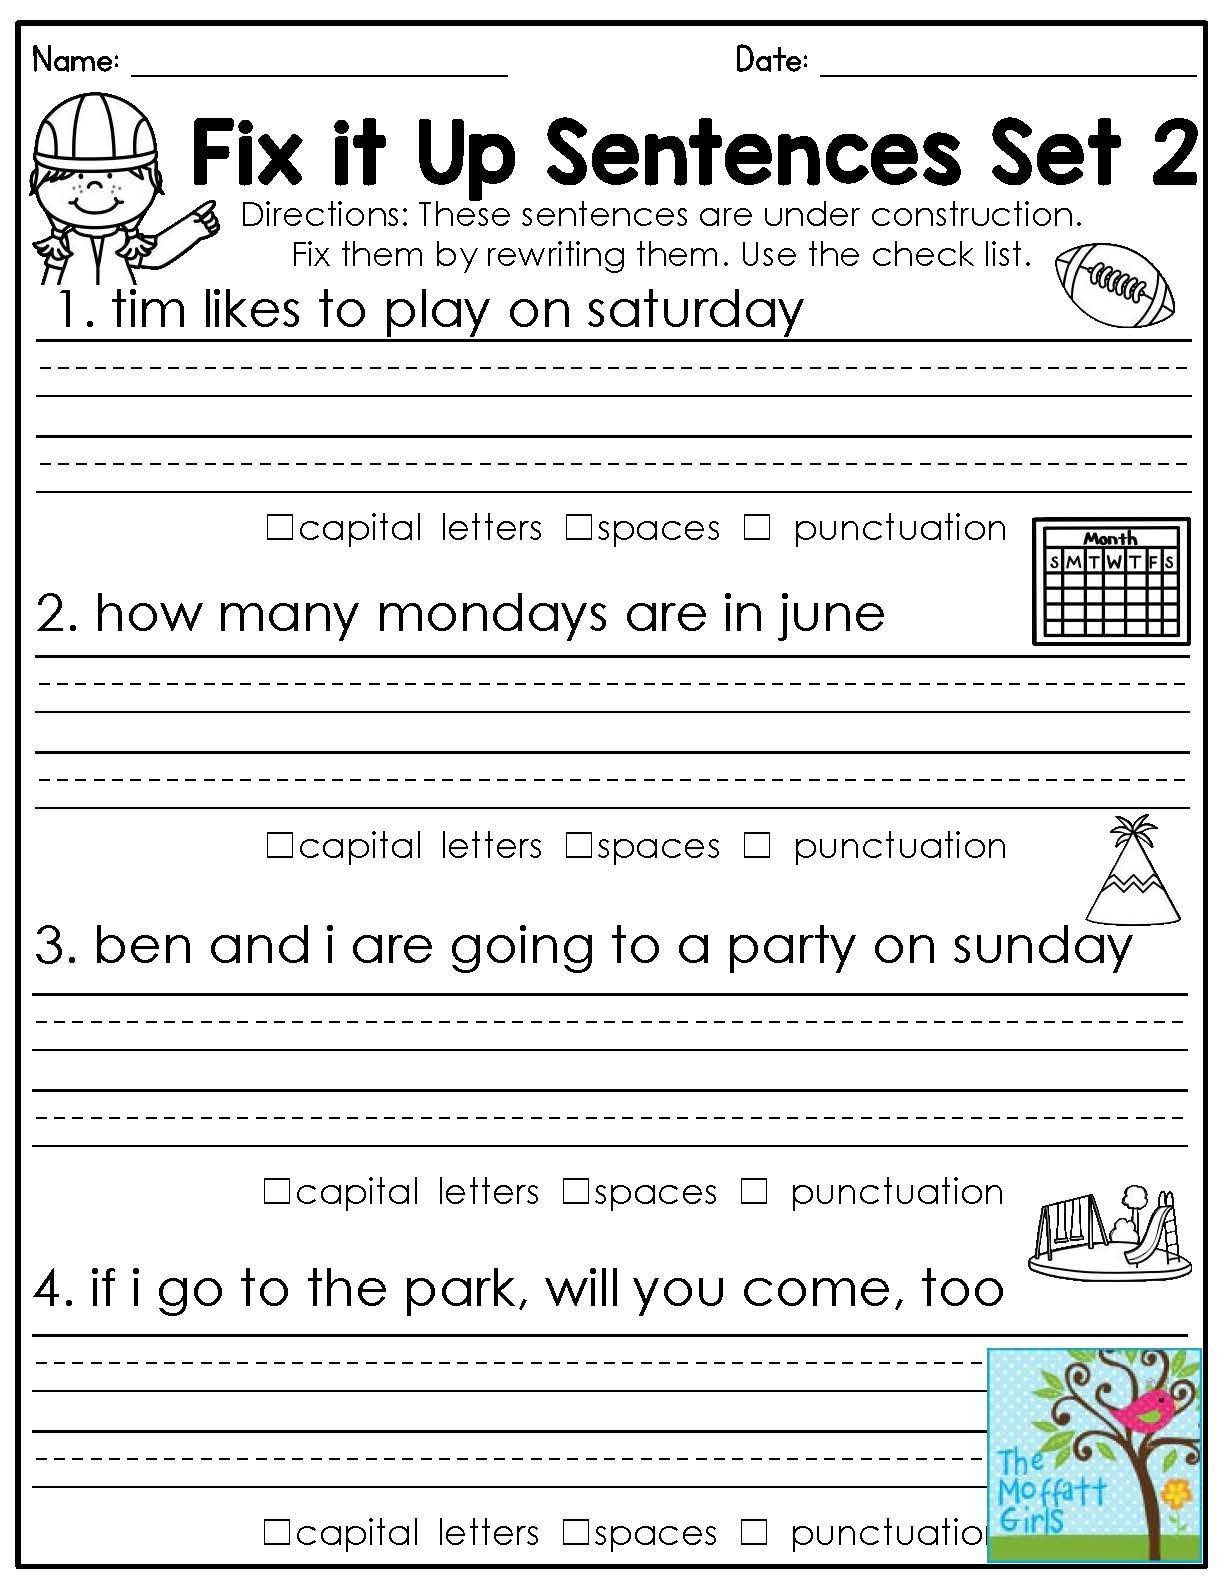 Sentence Correction Worksheets 2nd Grade 6 General Proofreading Worksheets 2nd Grade In 2020